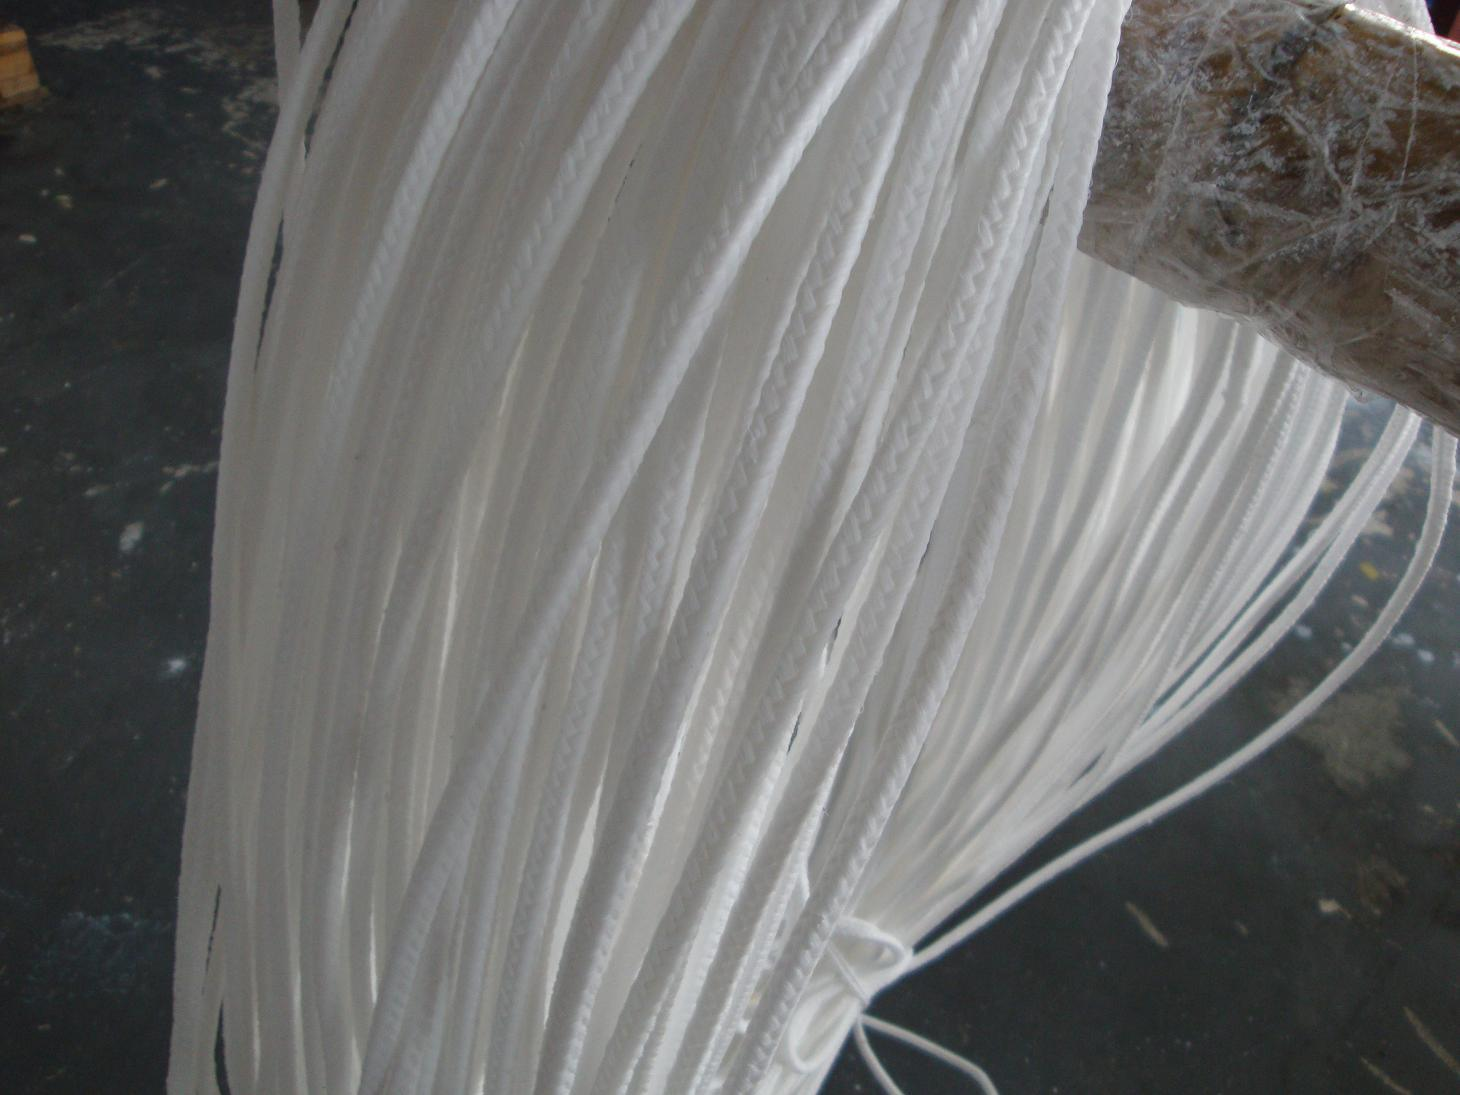 Gland Packing Sythetic Fiber Packing with PTFE Impregnation